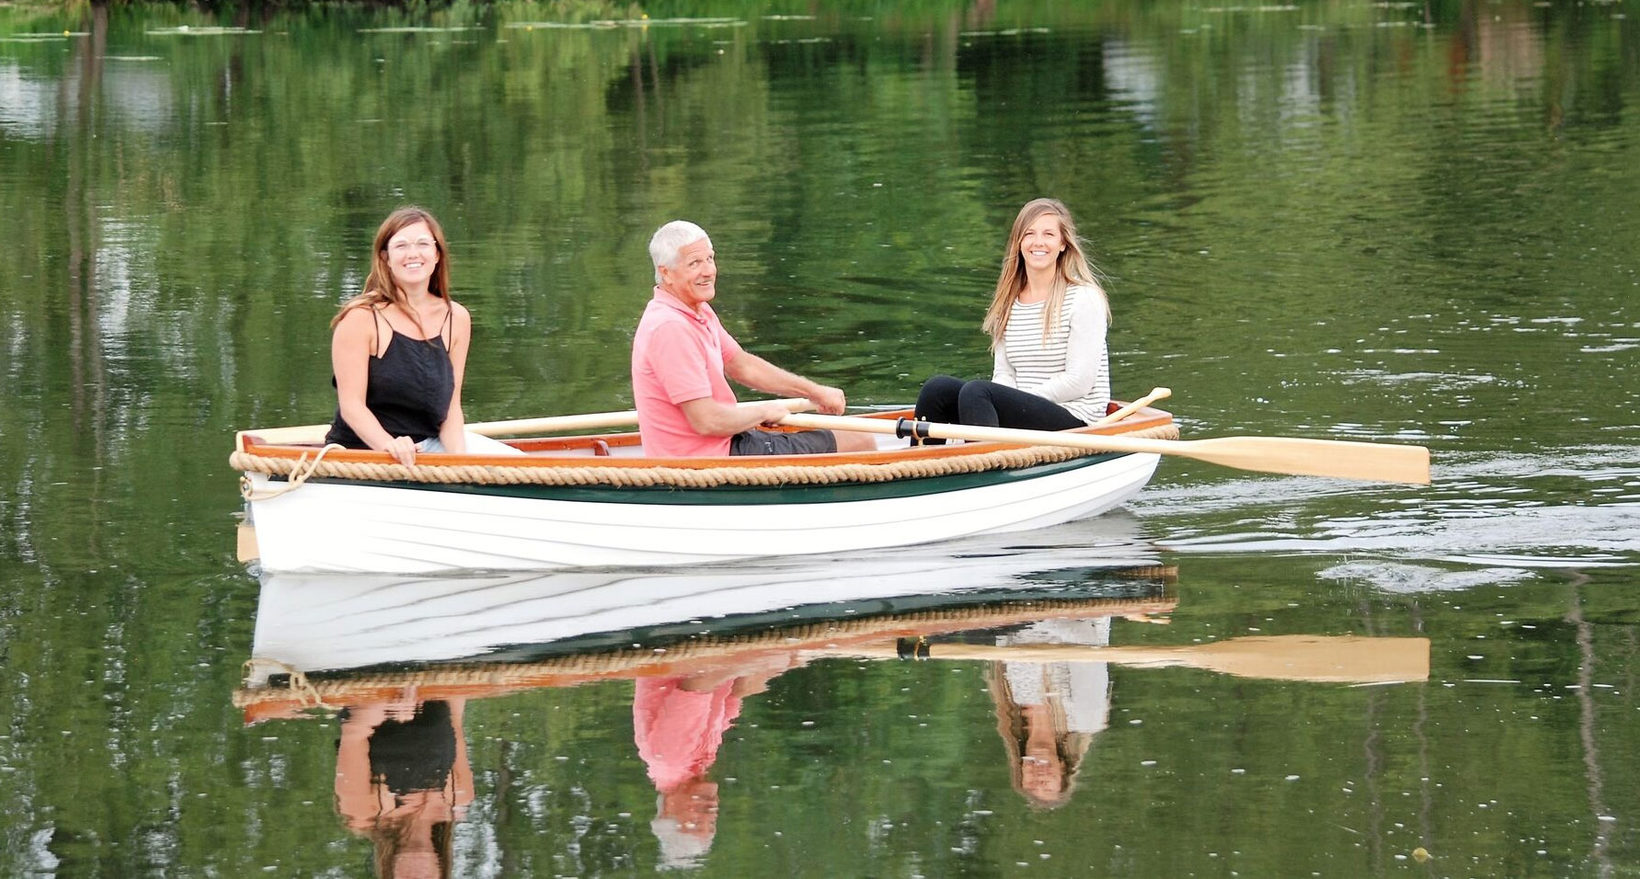 Boating on the Yonne